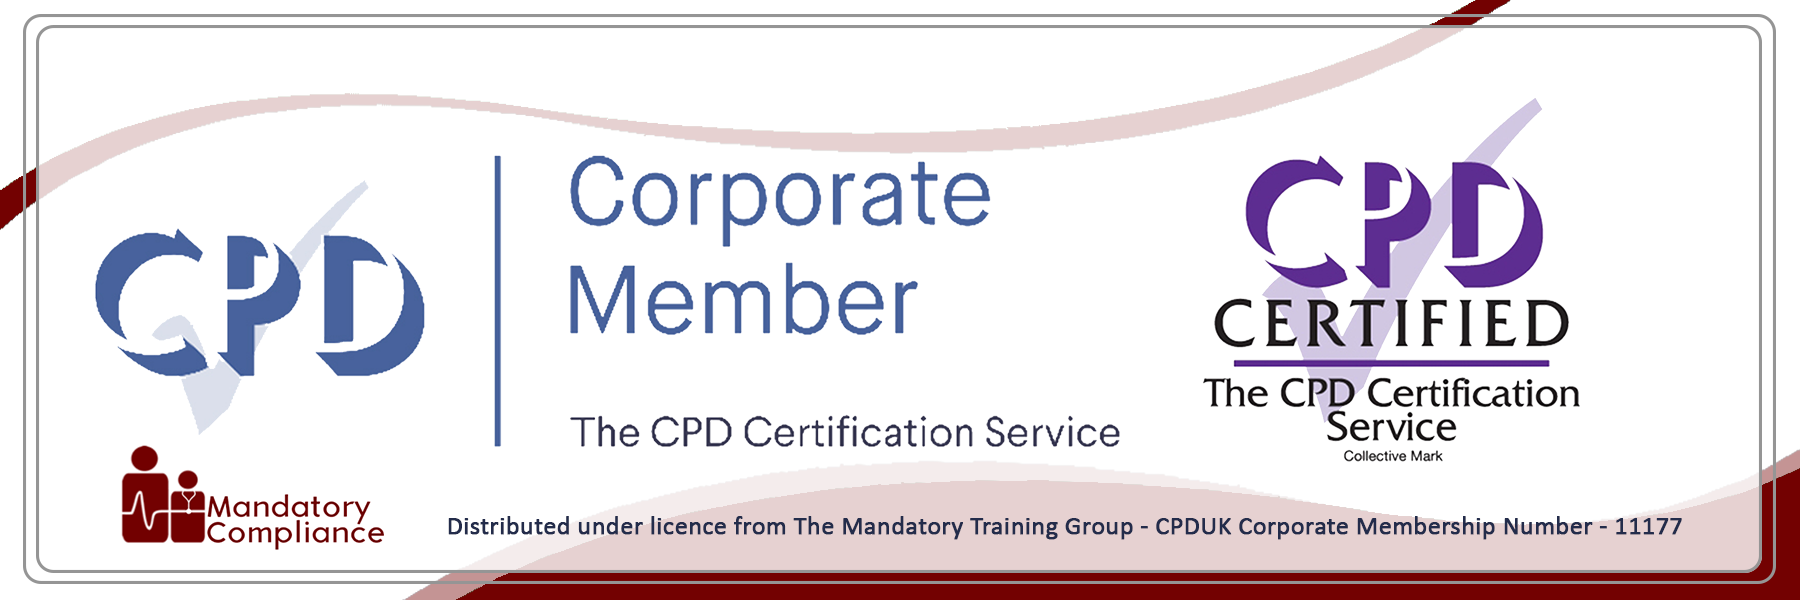 Tissue Viability Awareness - Online Course - The Mandatory Compliance UK -